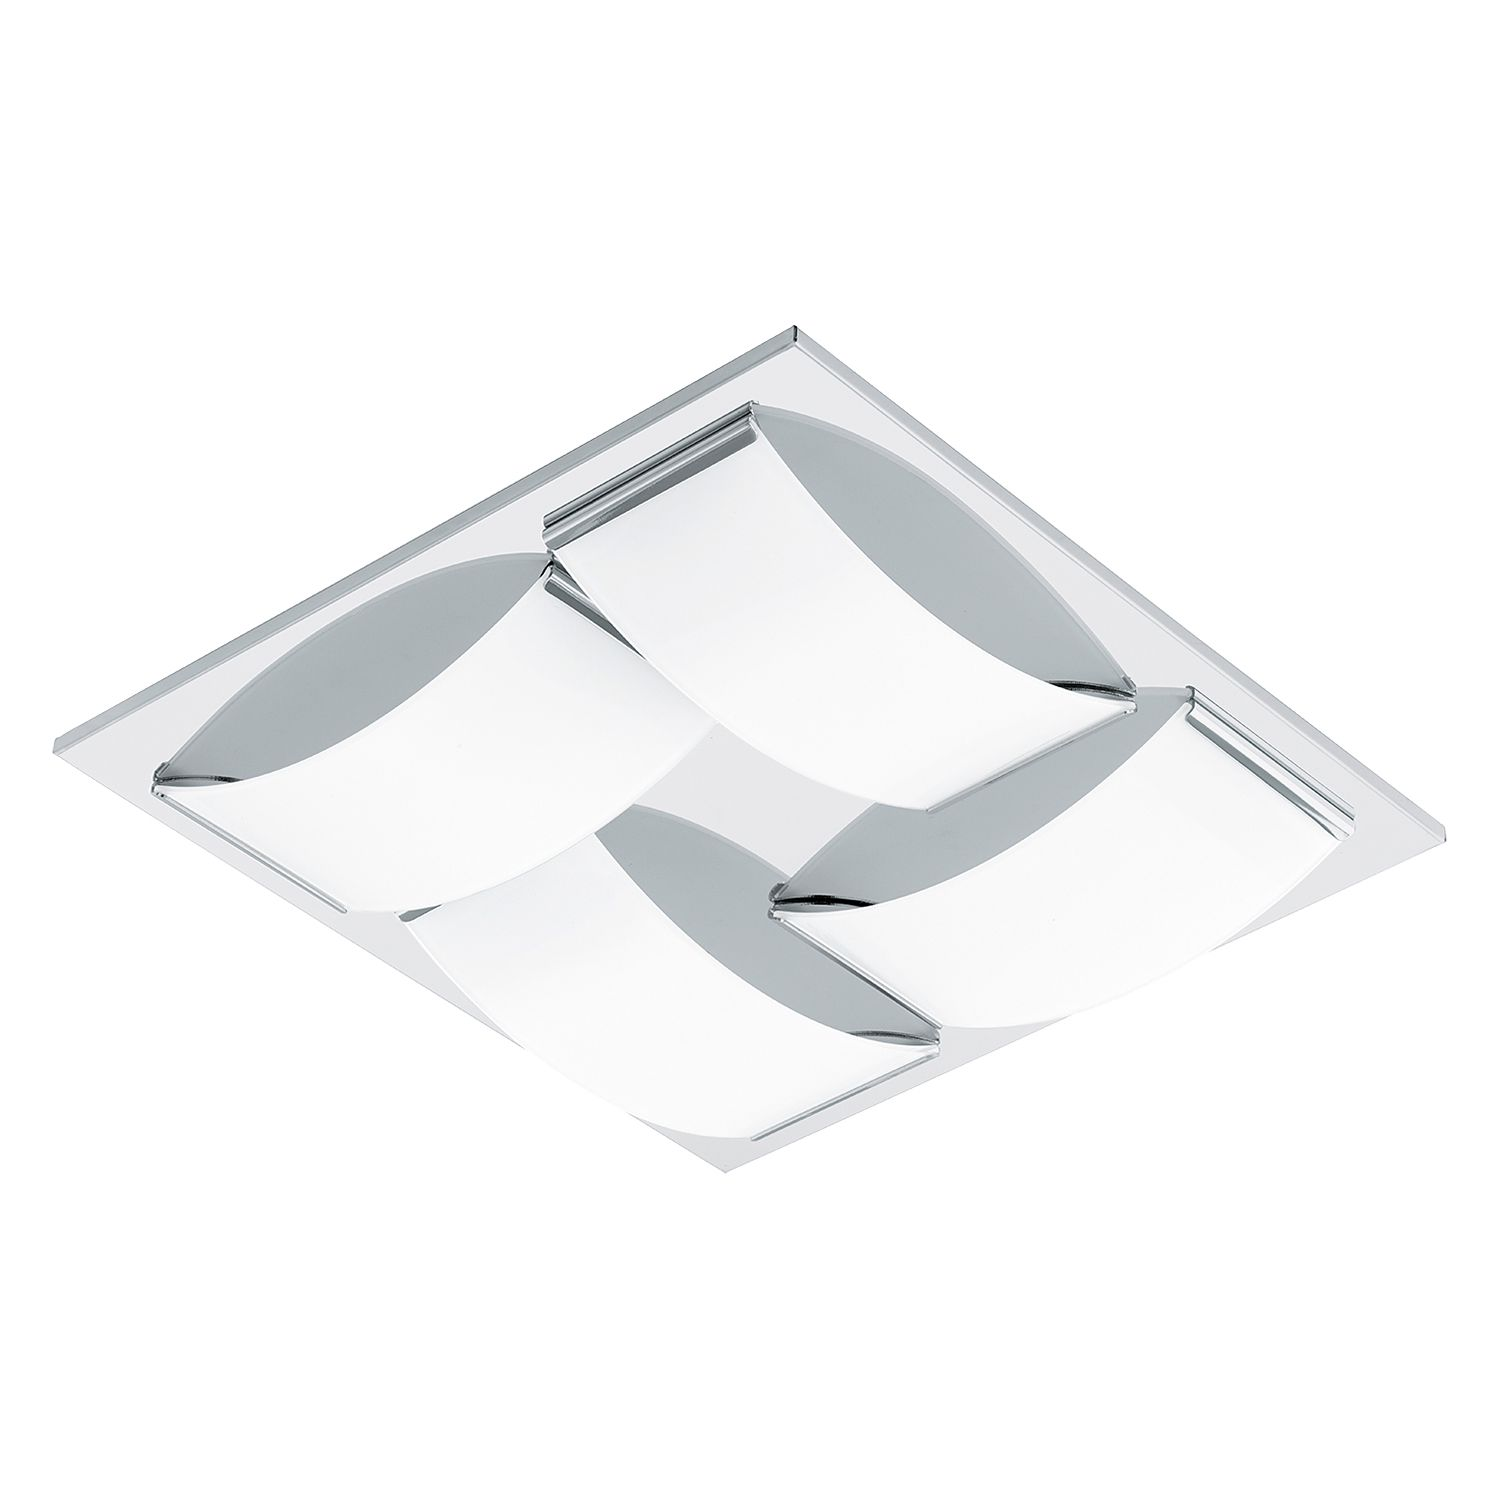 energie  A+, LED-plafondlamp Wasao - glas/roestvrij staal - 4 lichtbronnen, Eglo